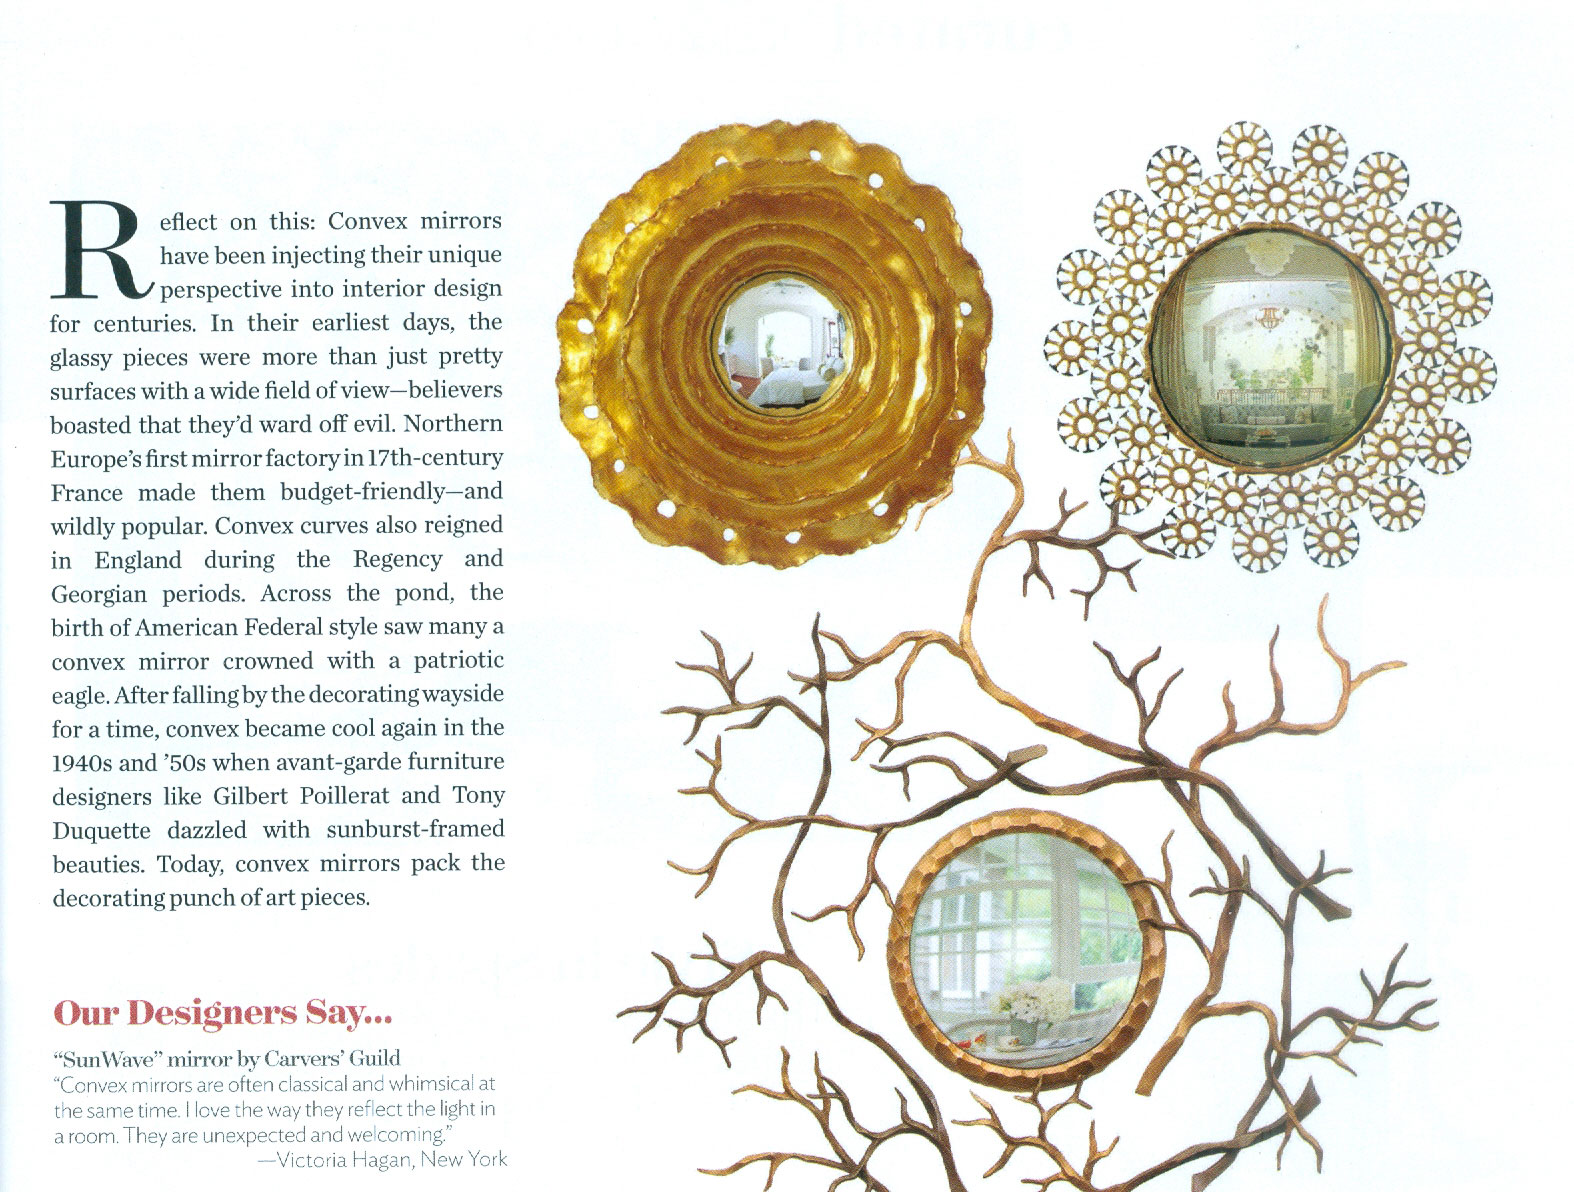 Traditional Home April 2016 | Carvers' Guild